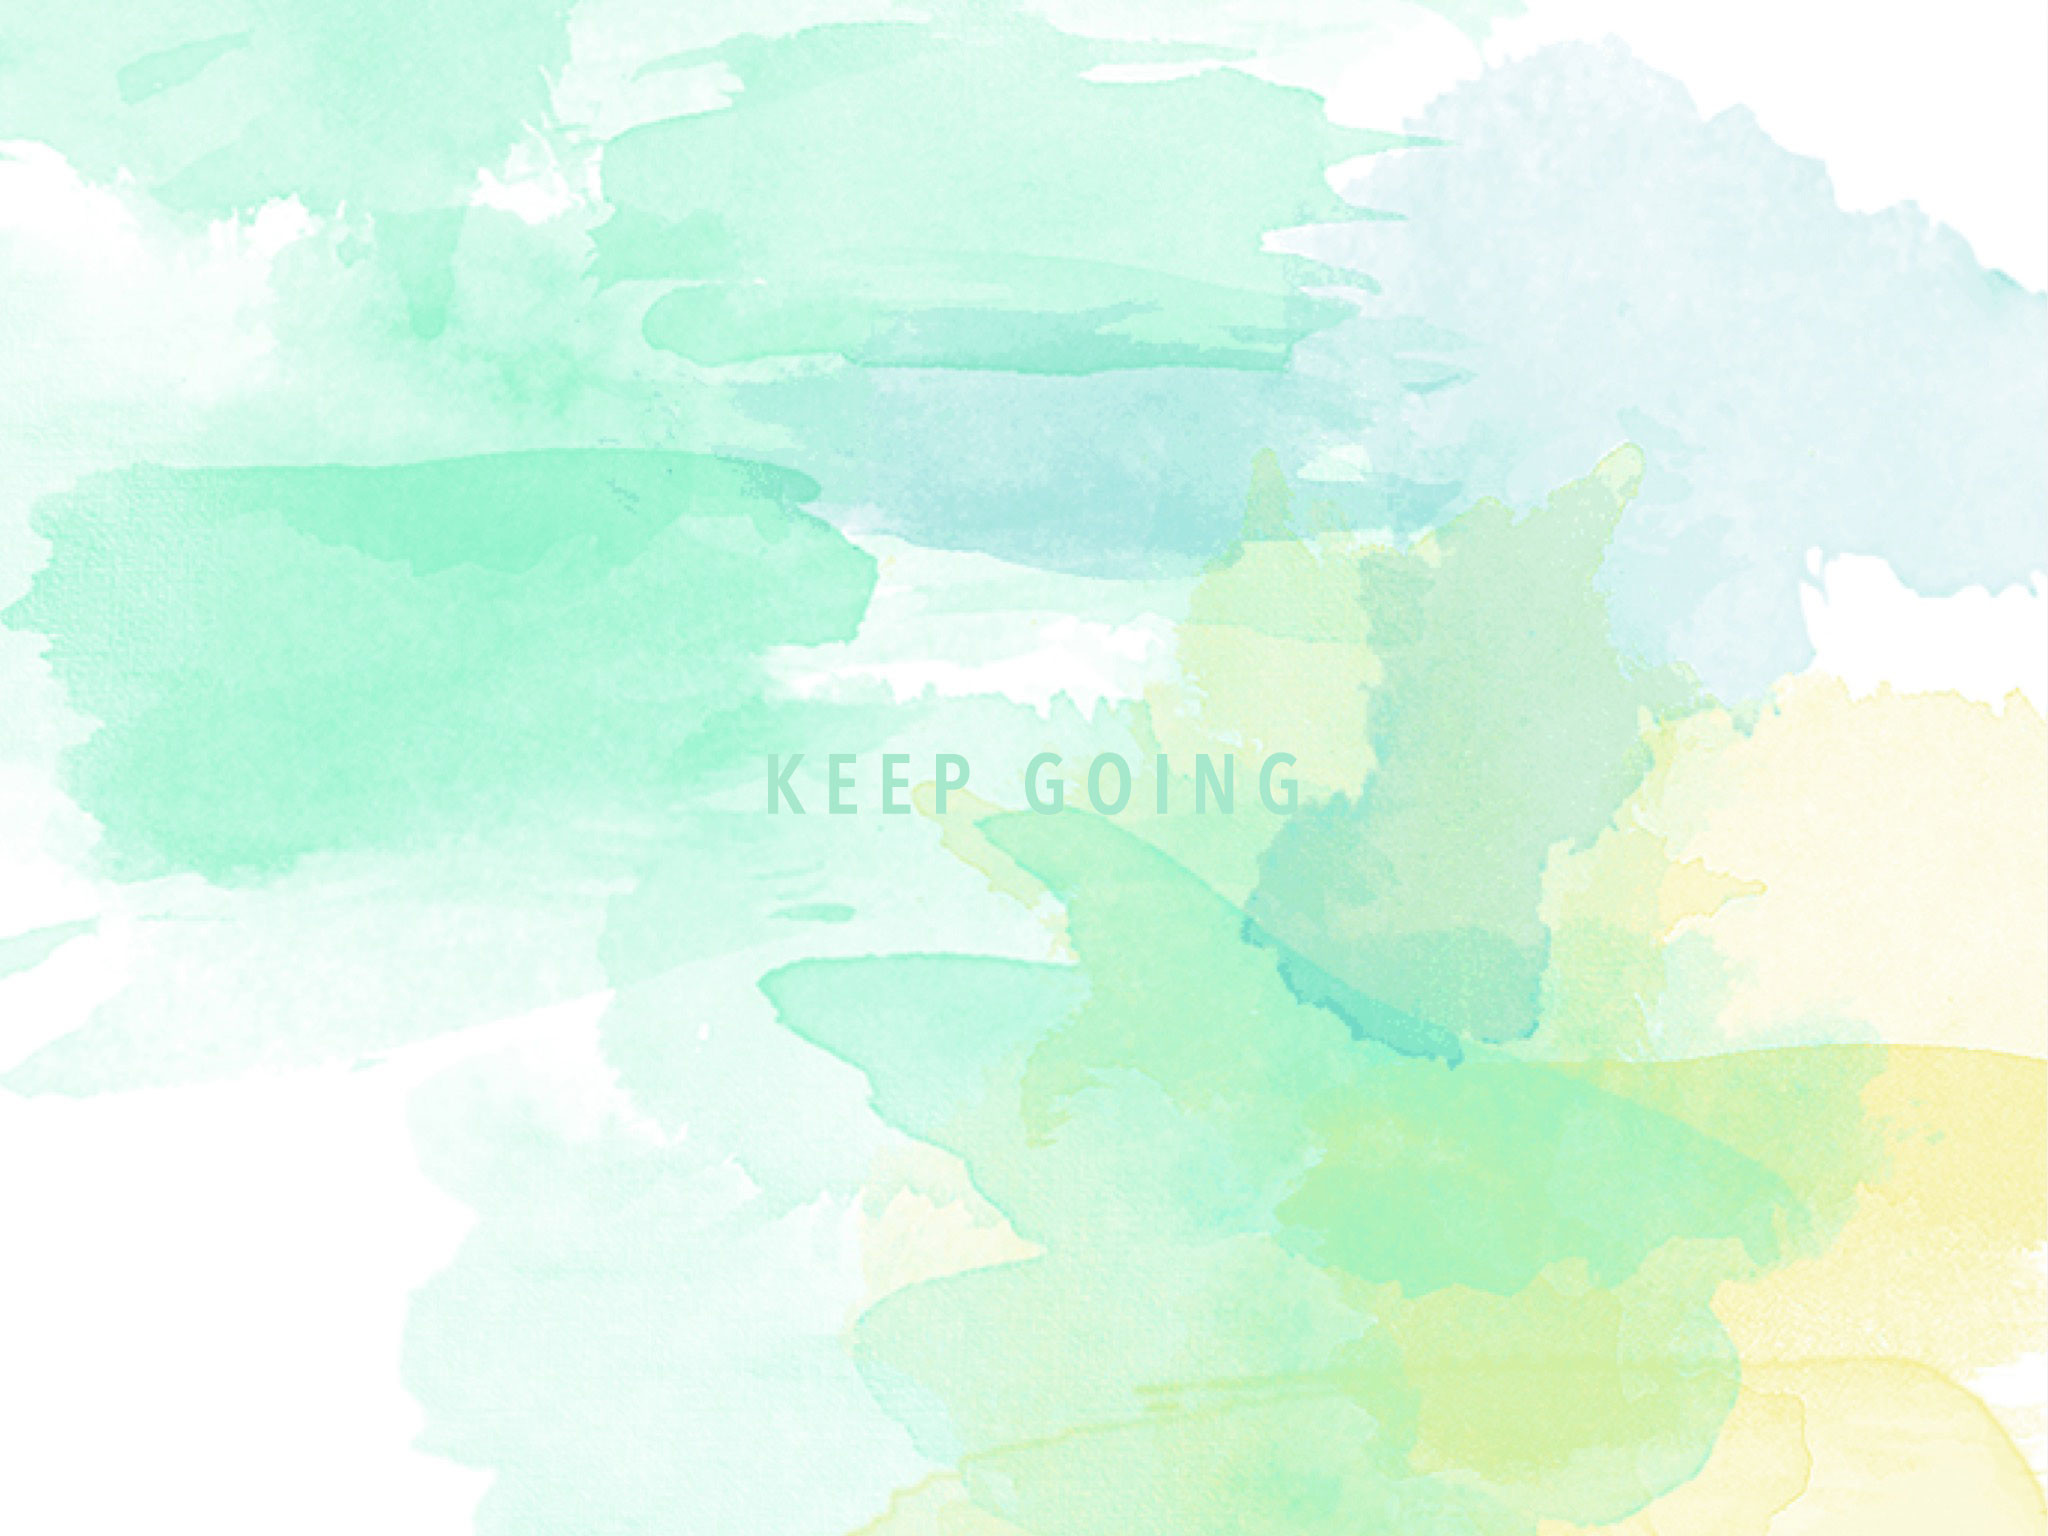 2048x1536 Mint aqua yellow watercolour Keep Going desktop wallpaper background